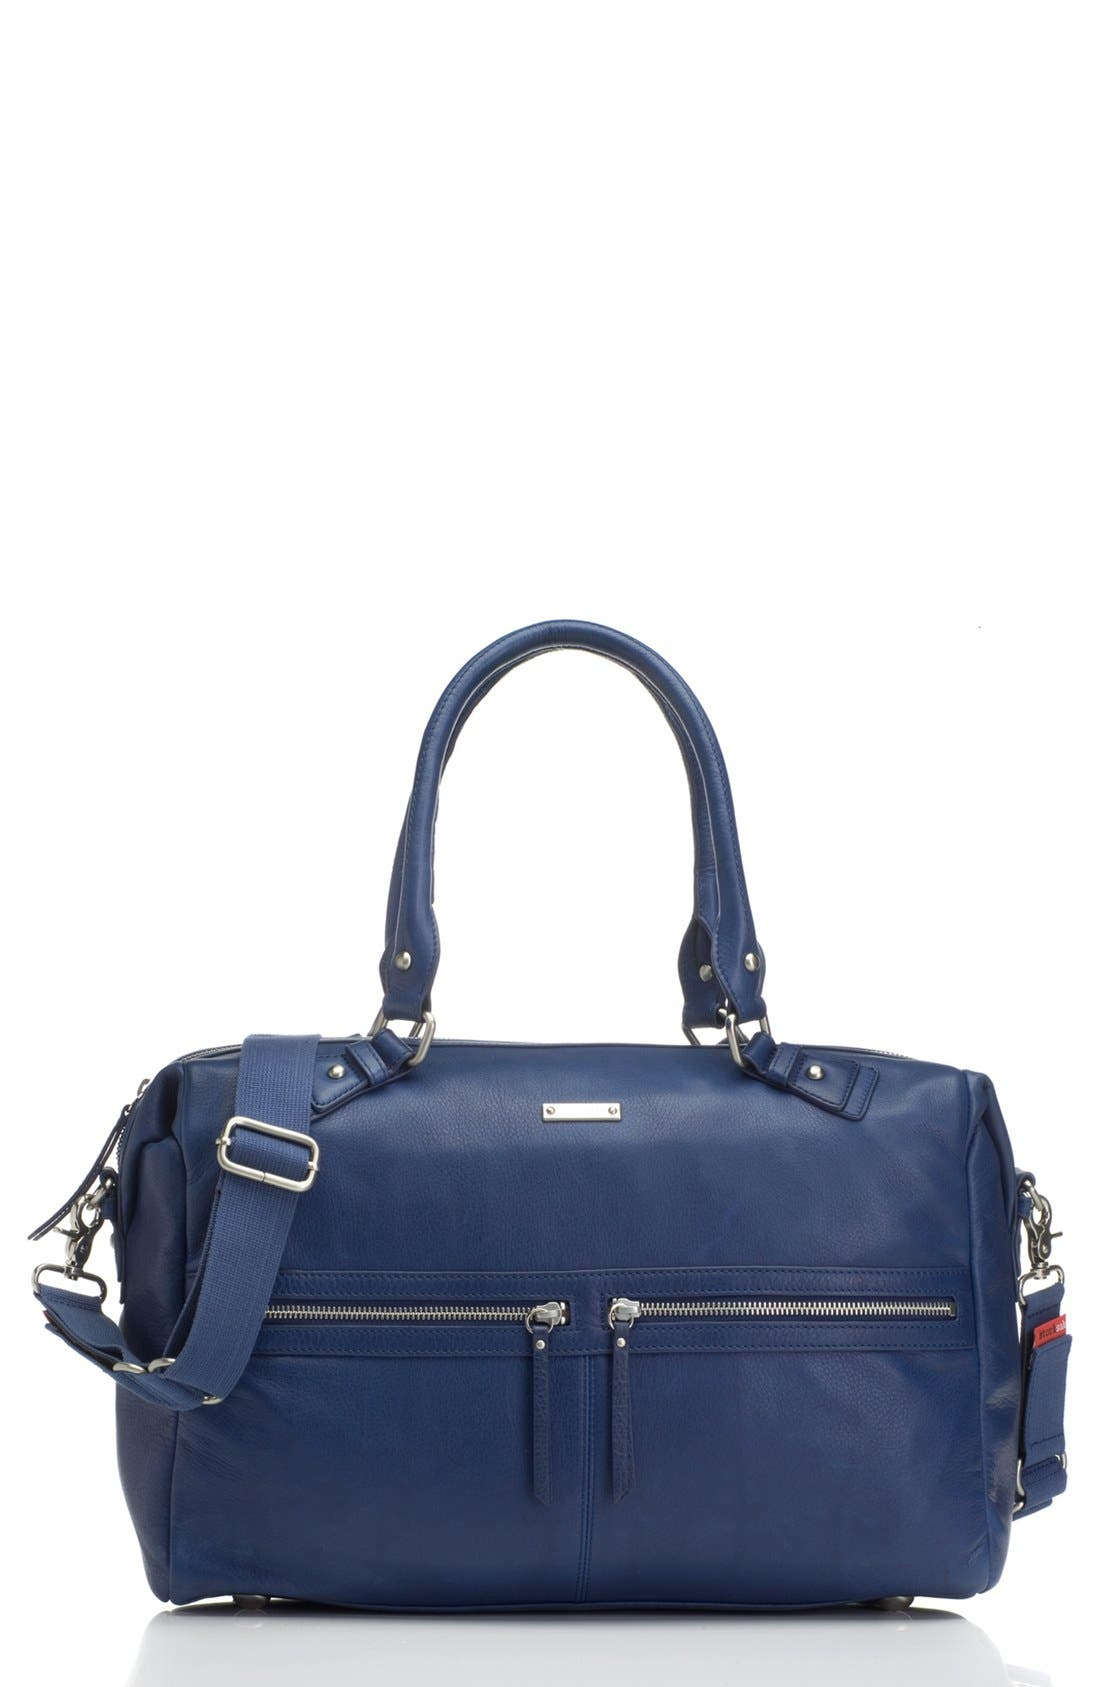 Alternate Image 1 Selected - Storksak 'Caroline' Leather Diaper Bag